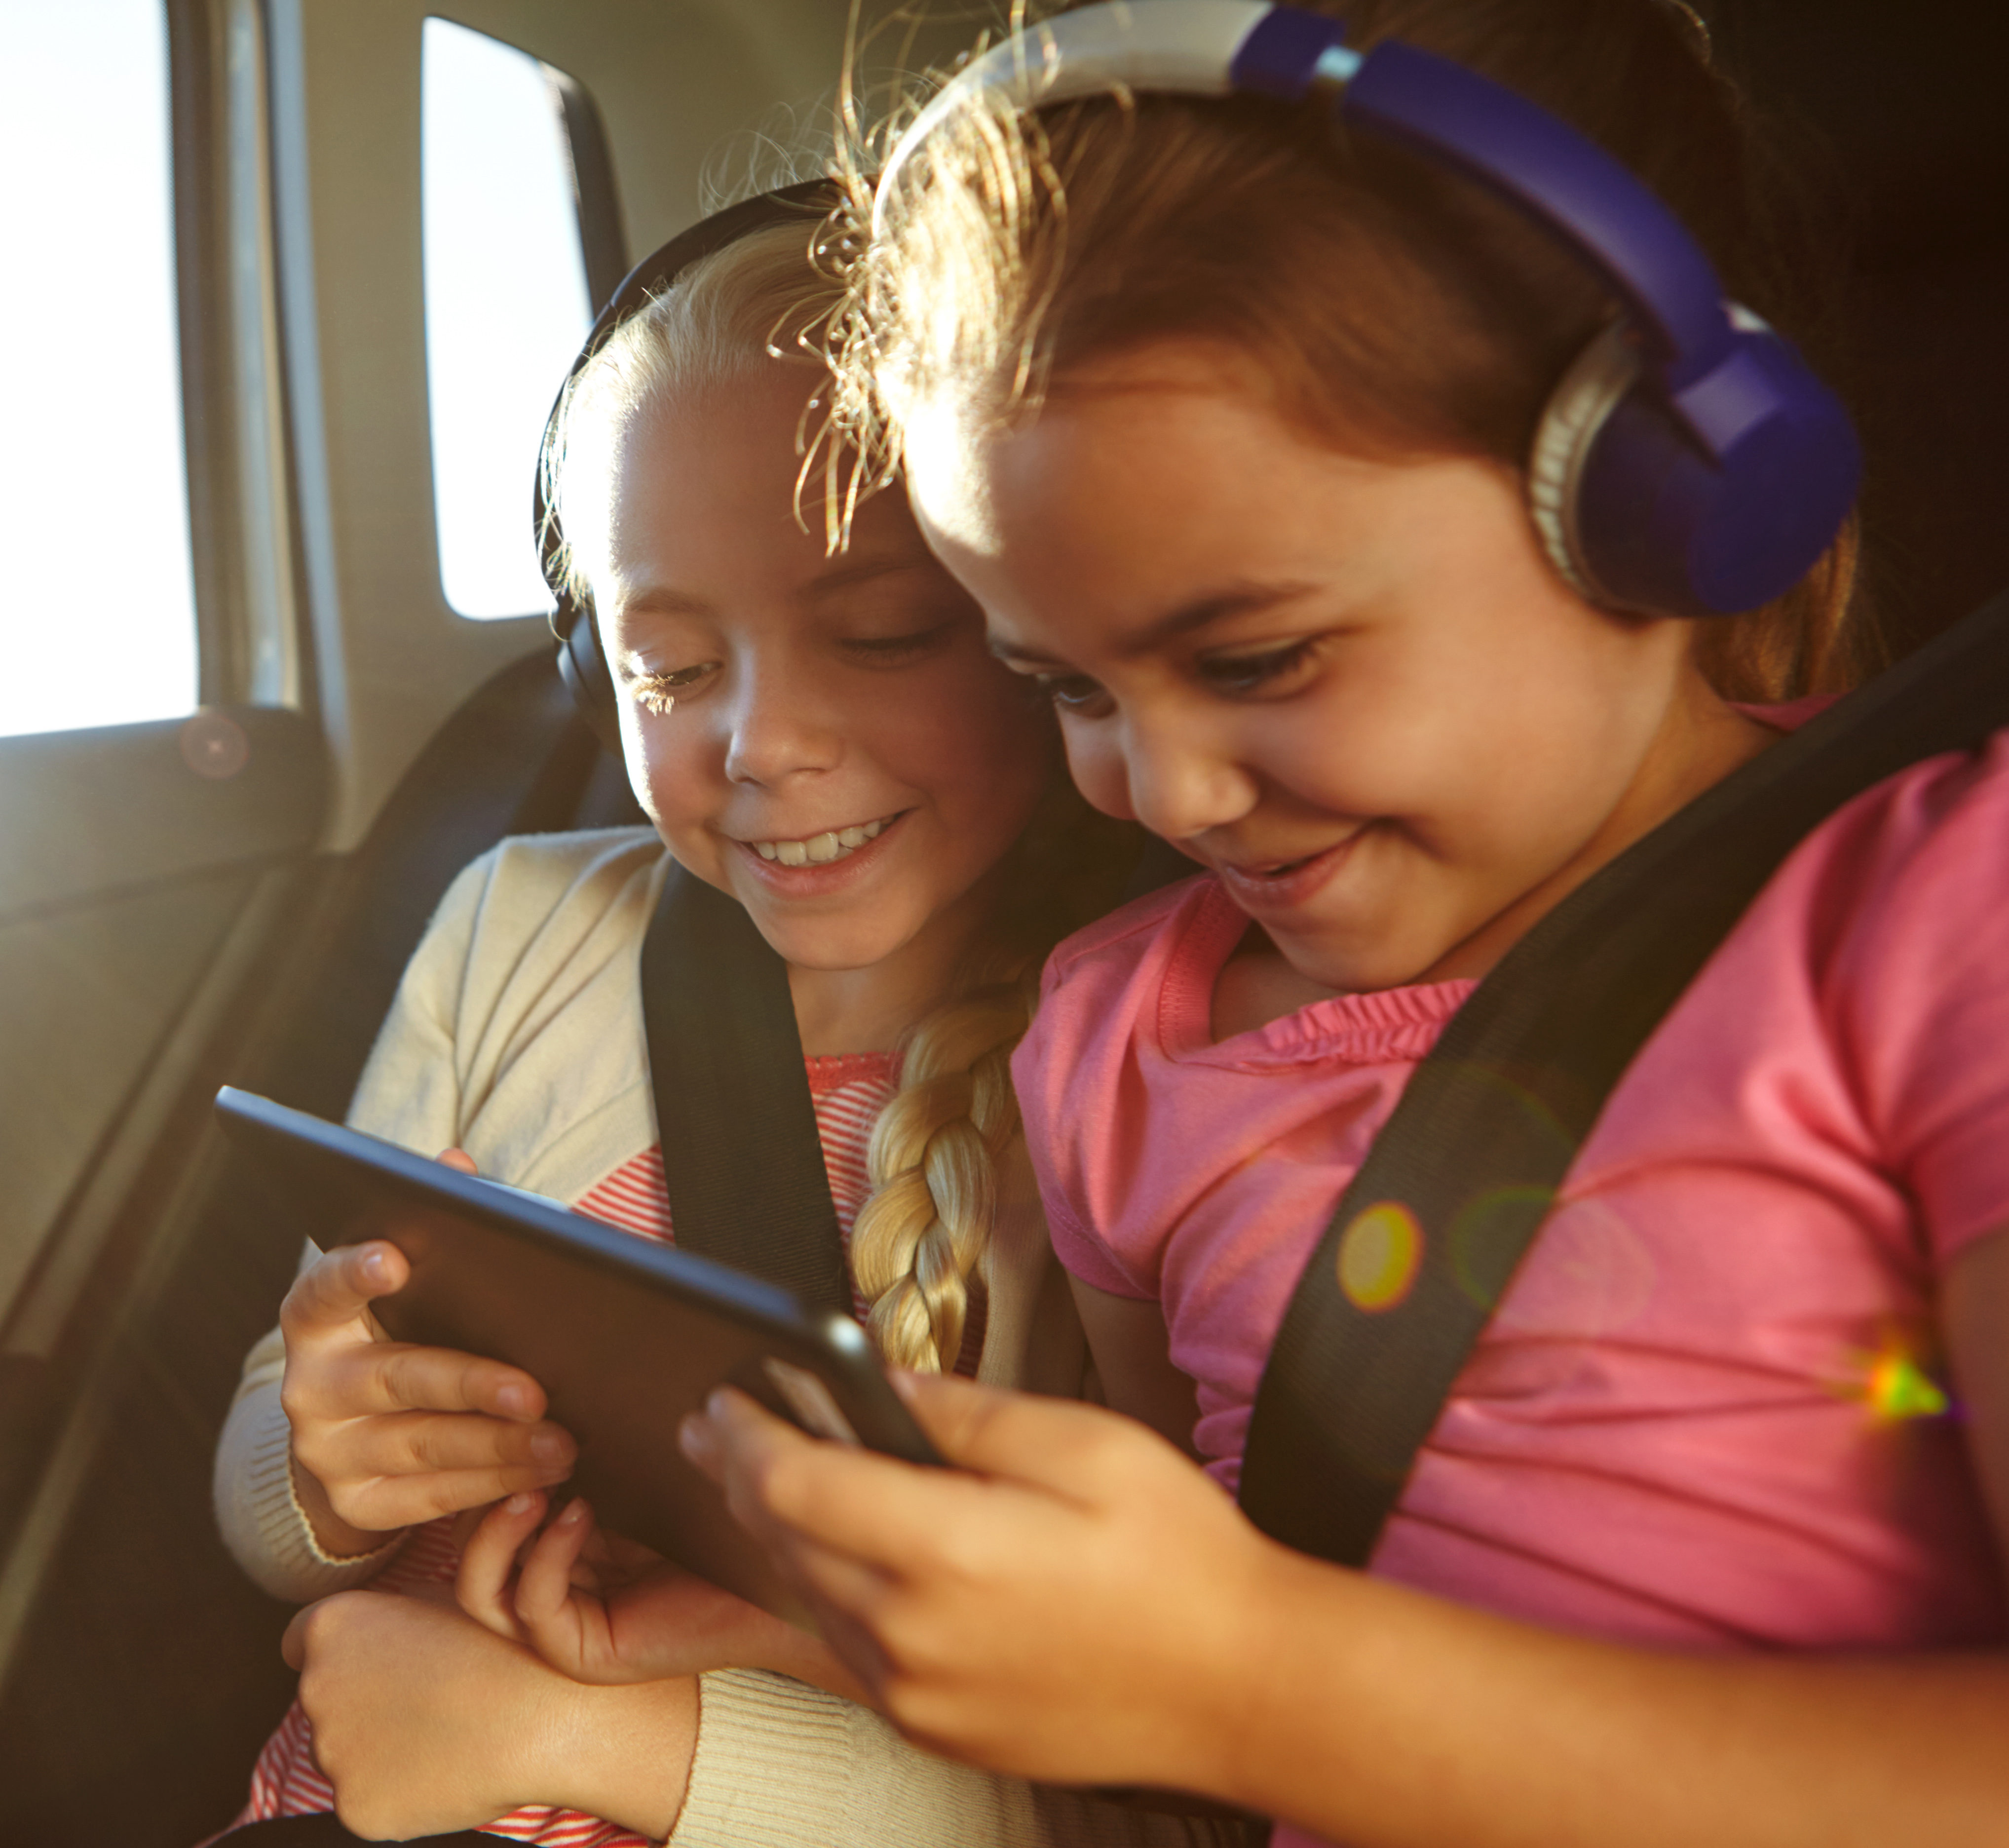 girls wearing headphones with a electronic tablet